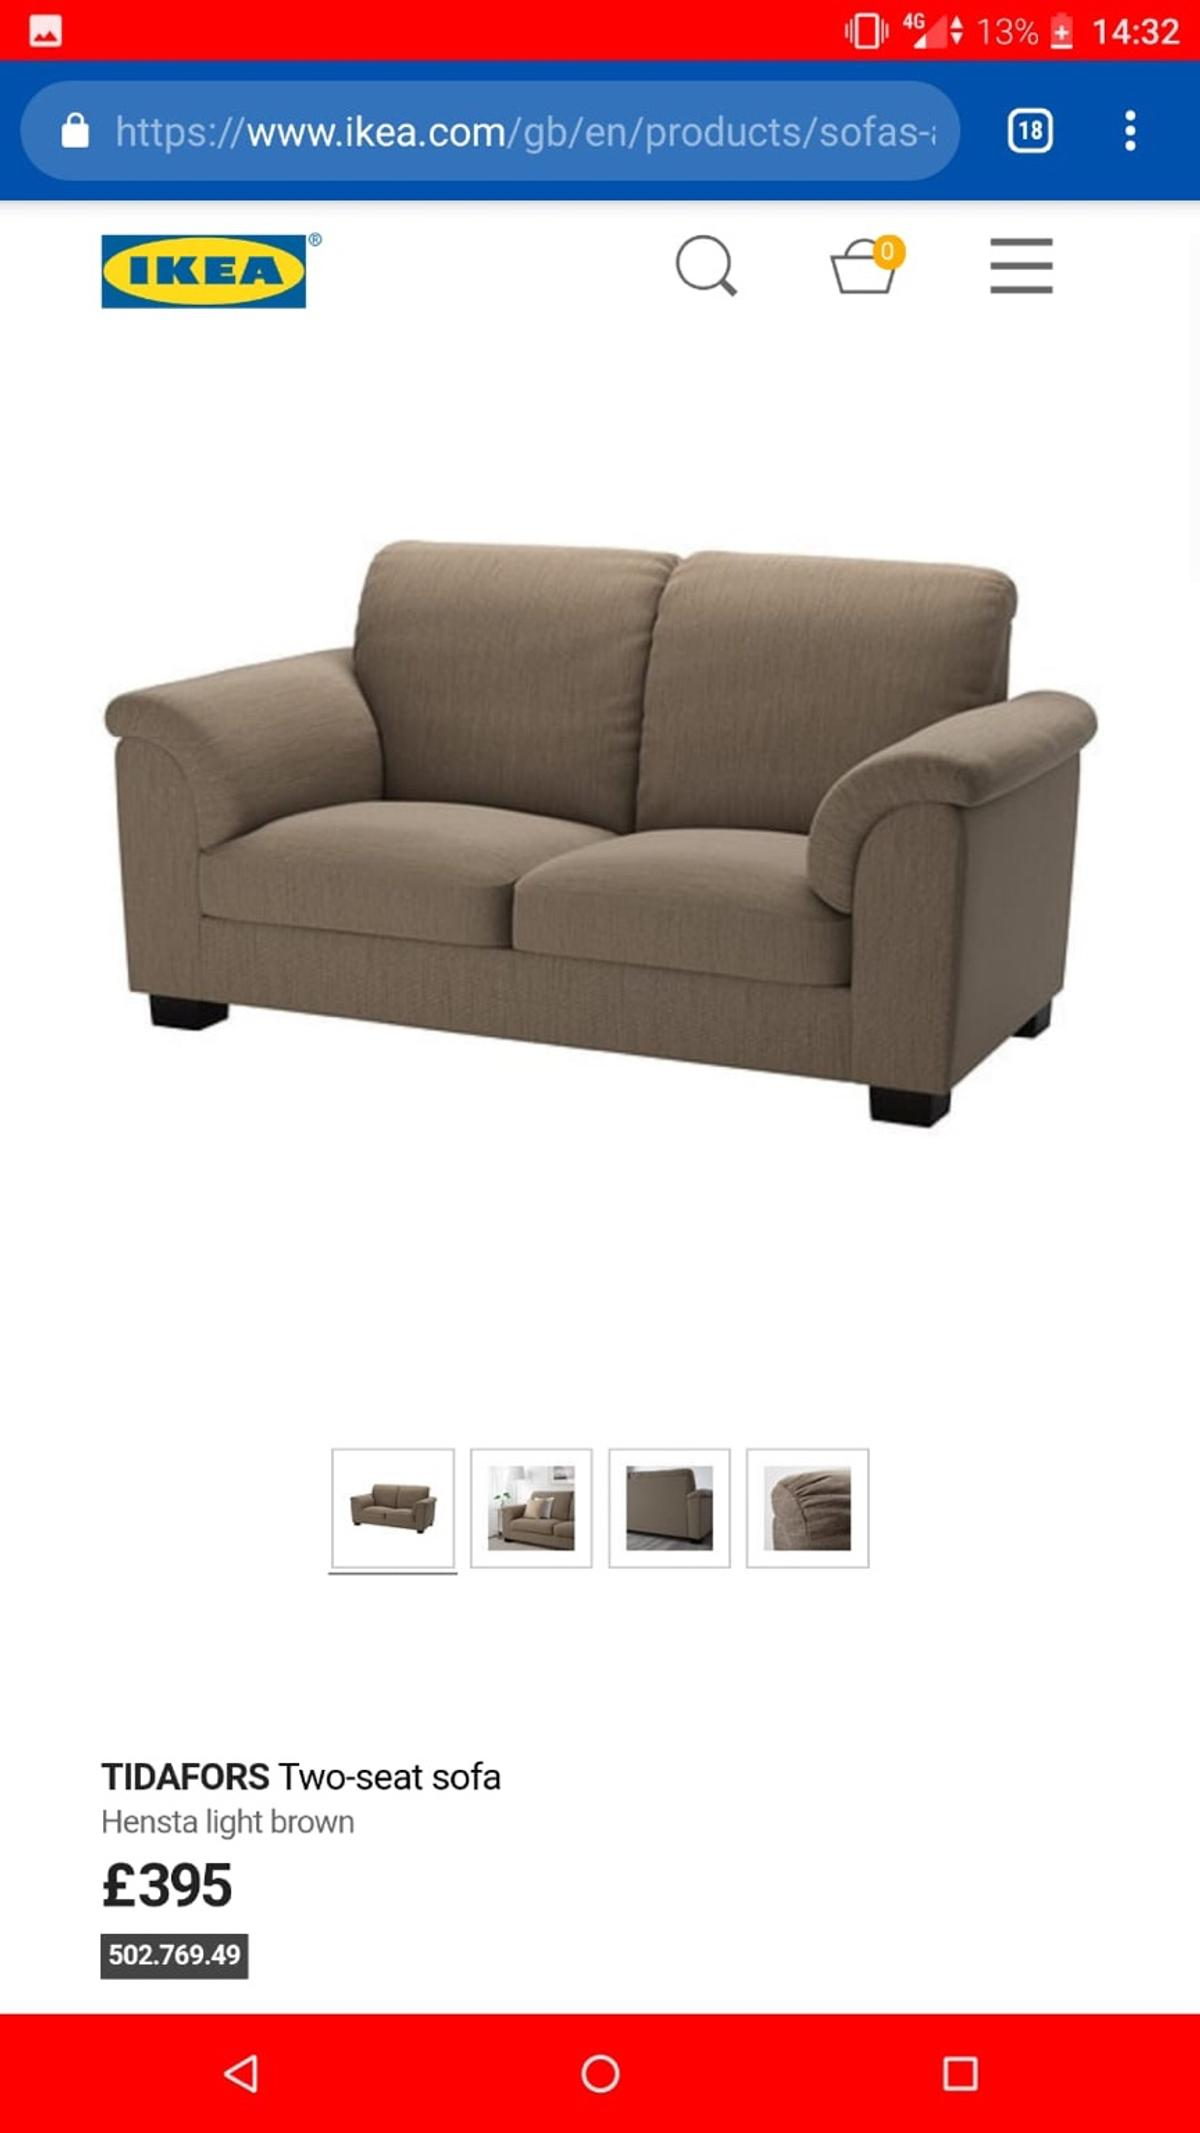 Ikea 2 Seater Couch In Bangor For 150